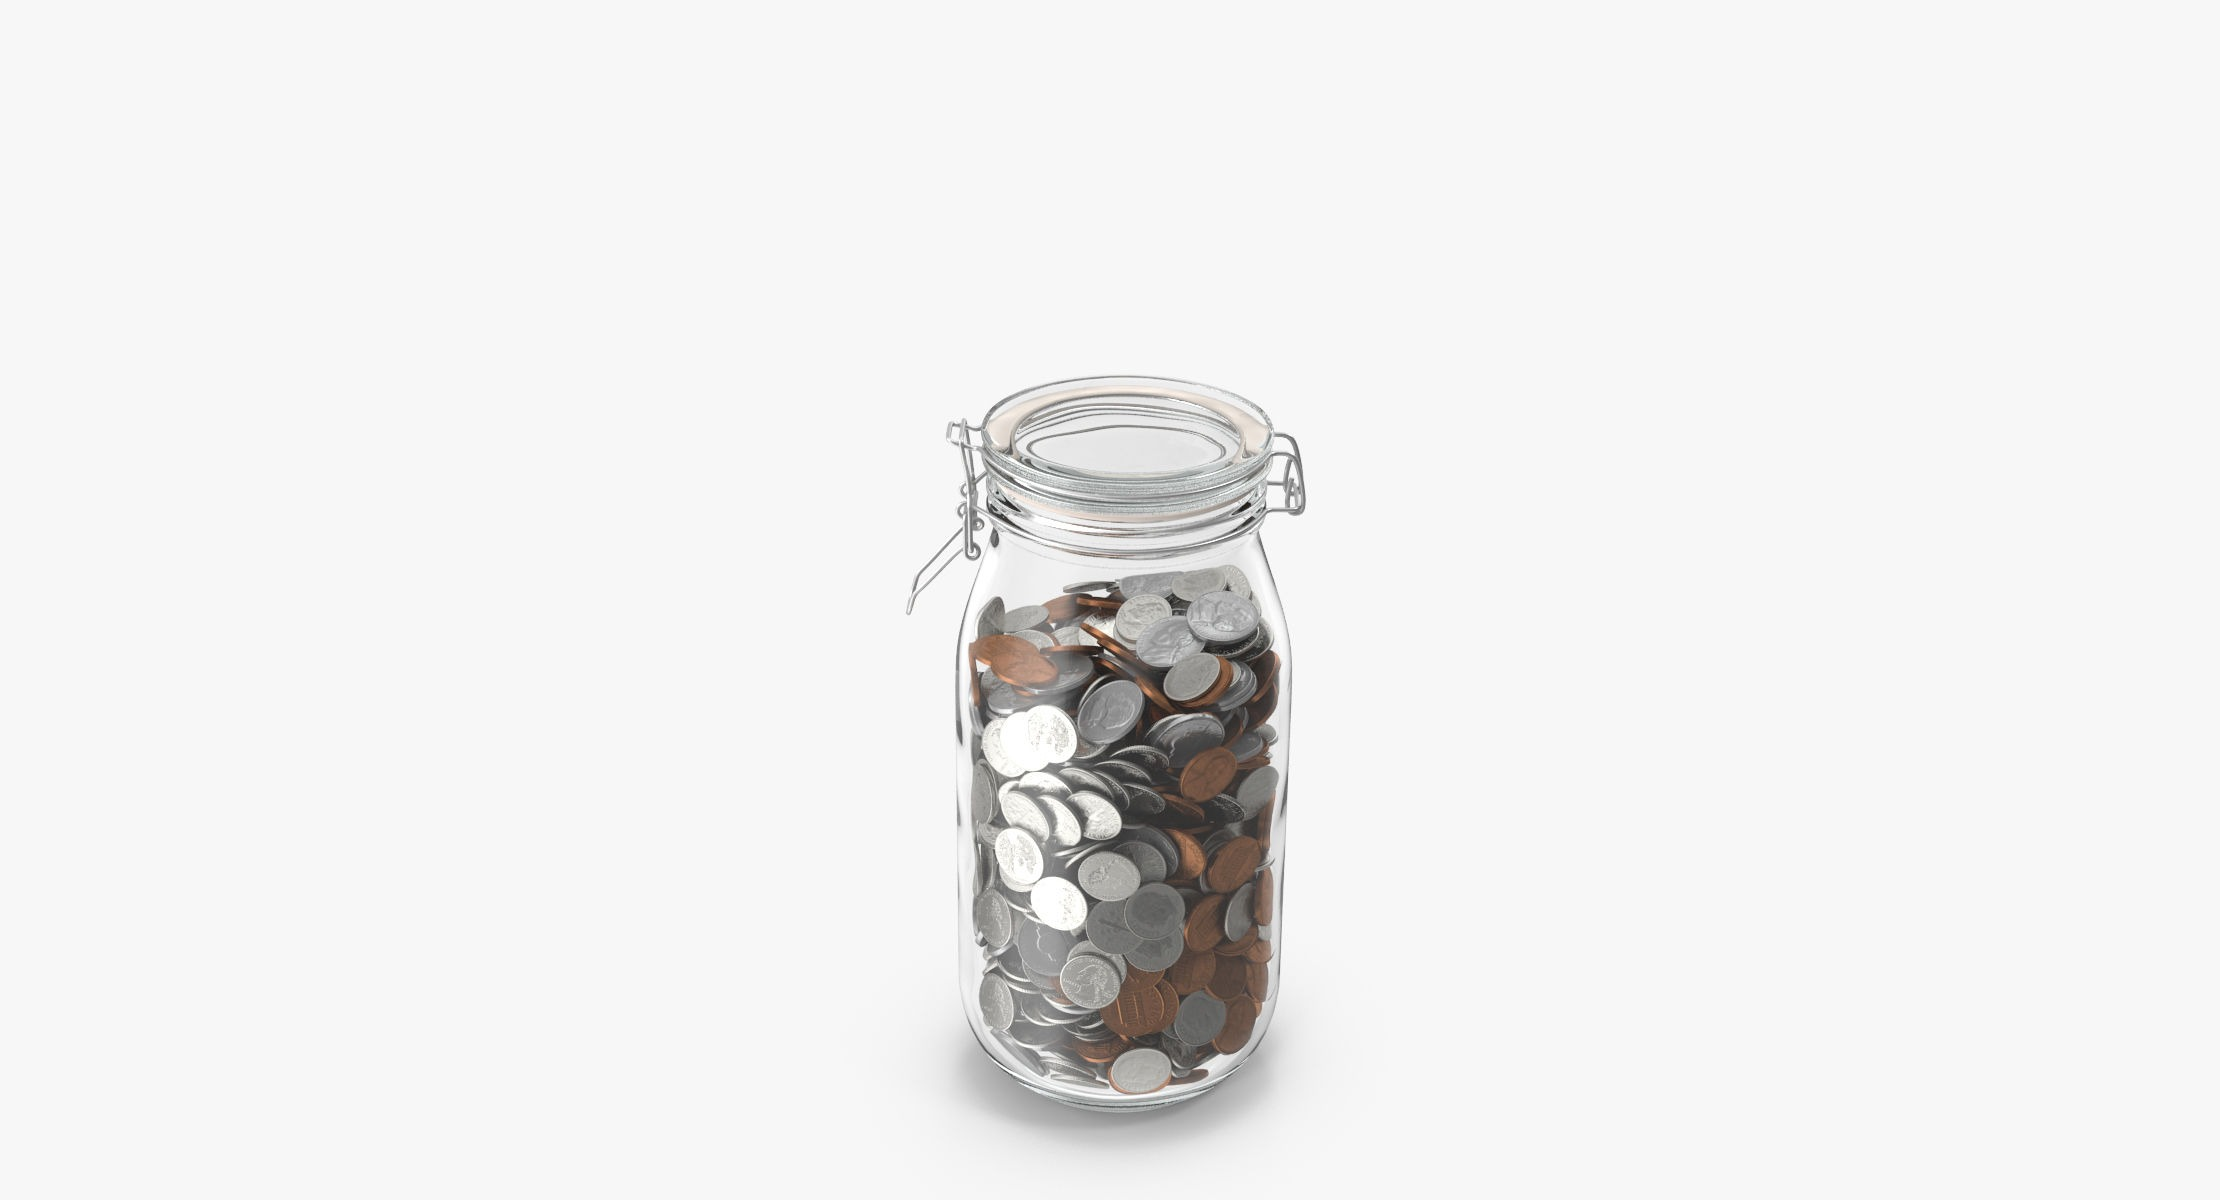 Glass Jar With Currency 02 Dollar - reel 2